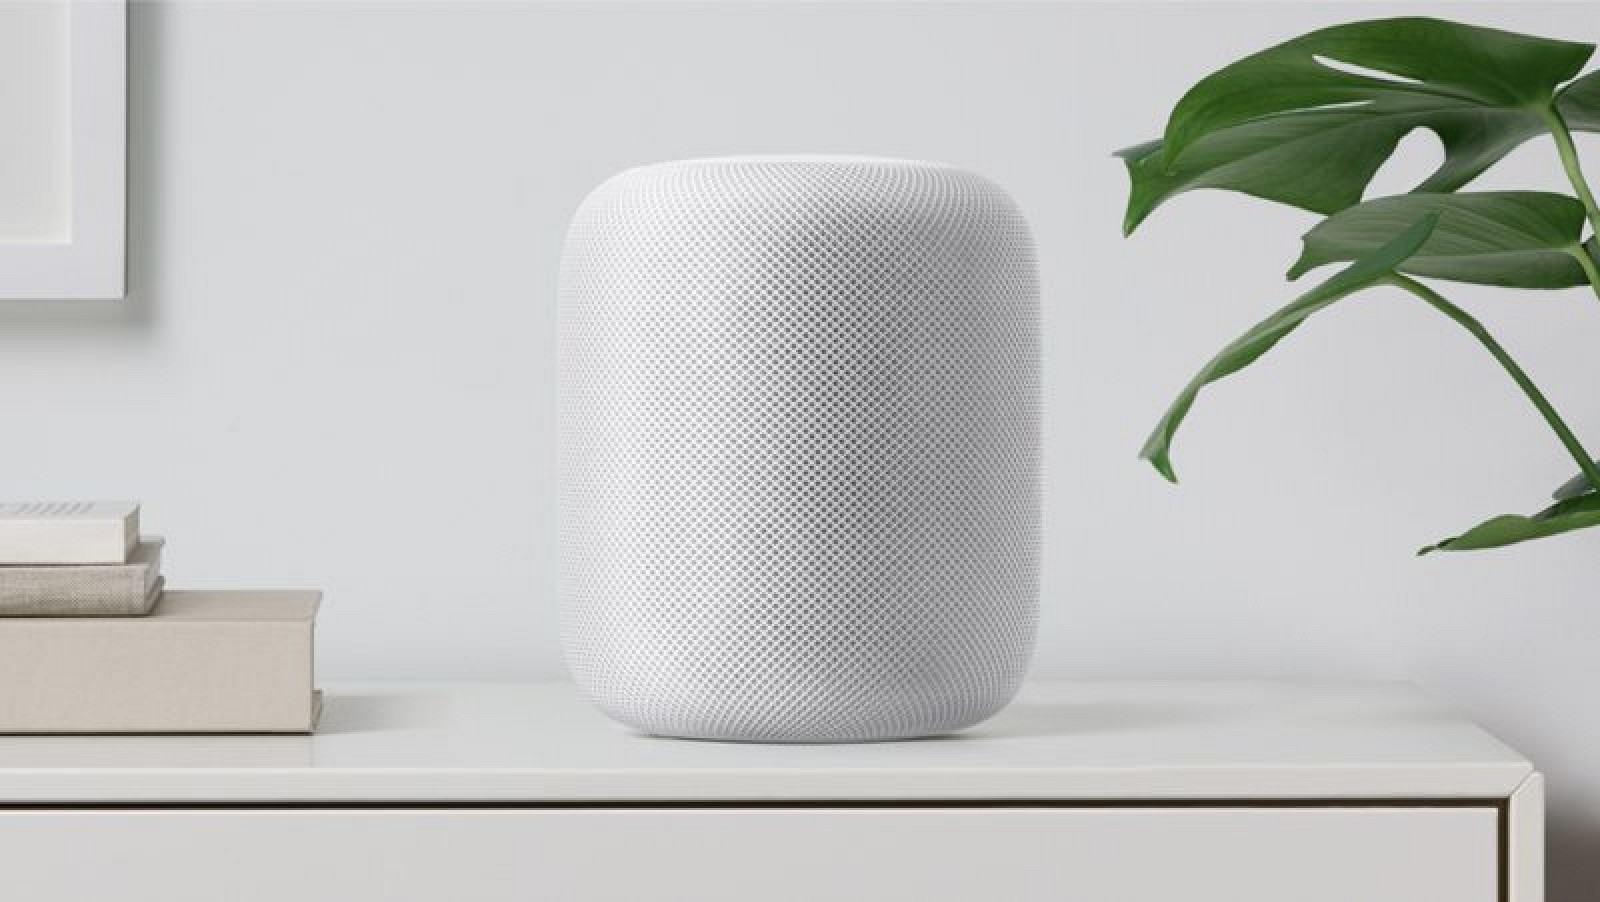 homepod should launch soon as inventec begins shipments to apple